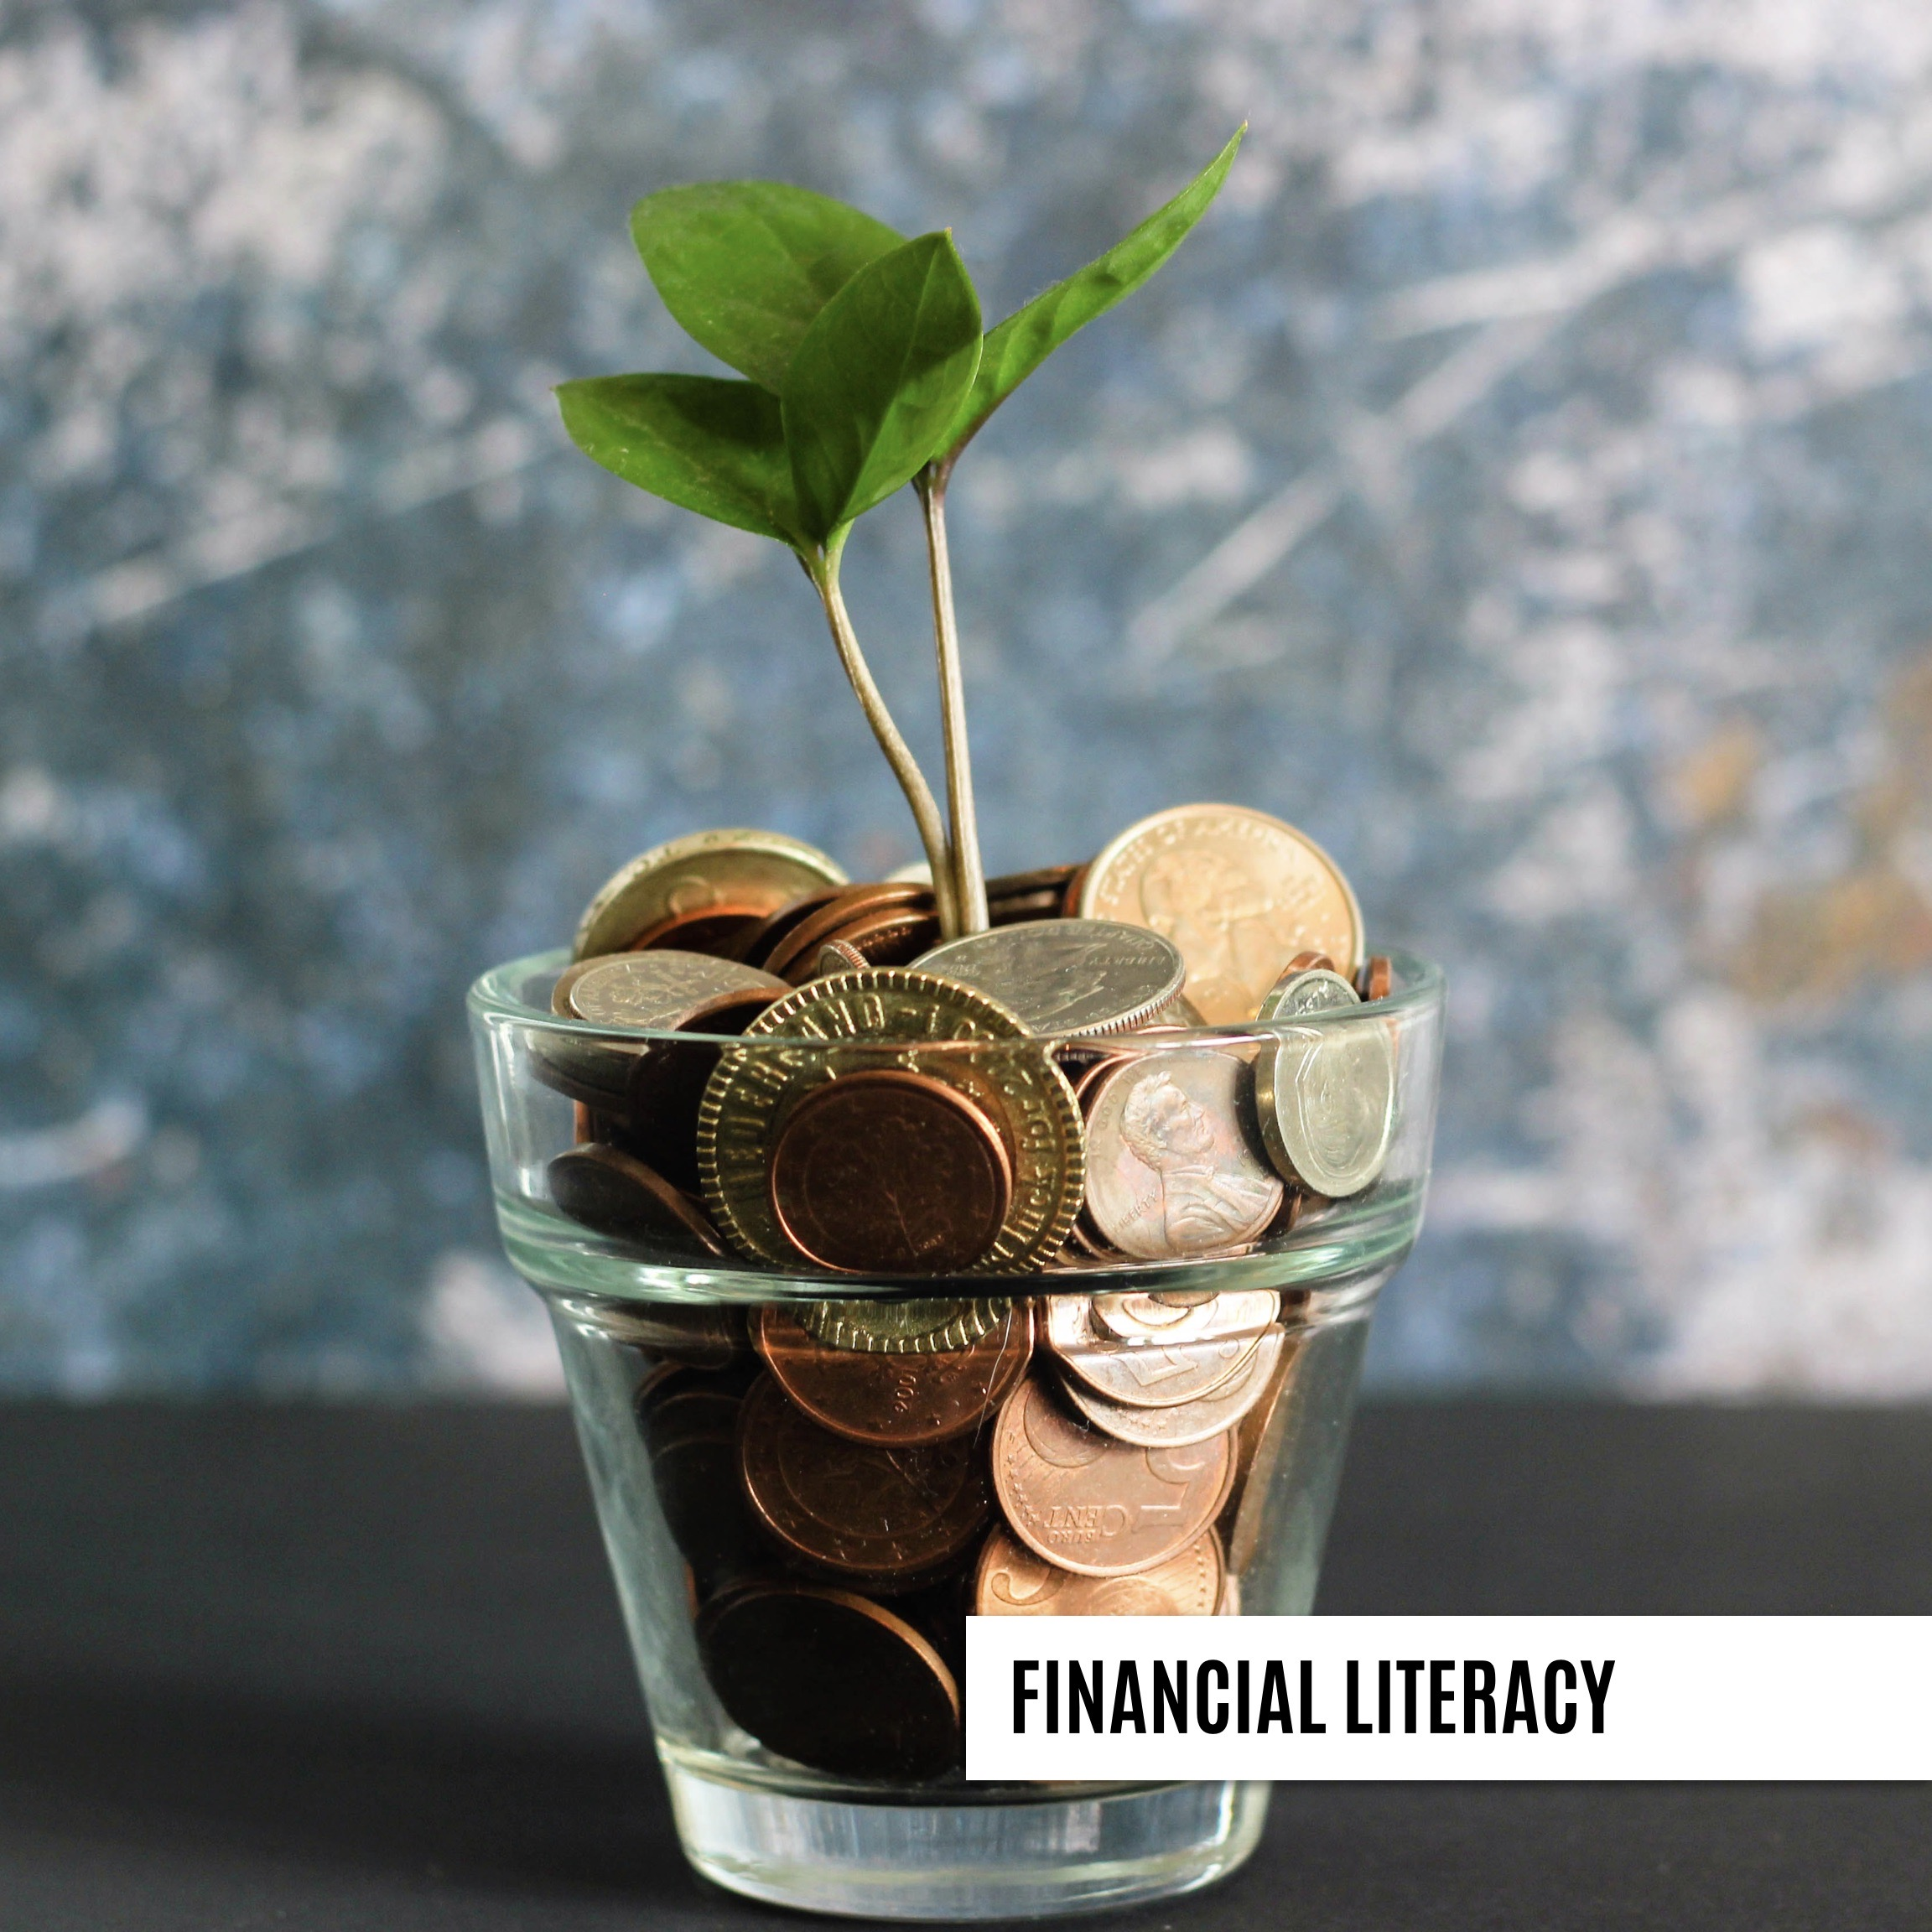 Consumer Education Workshops Available to Financial Services Industry